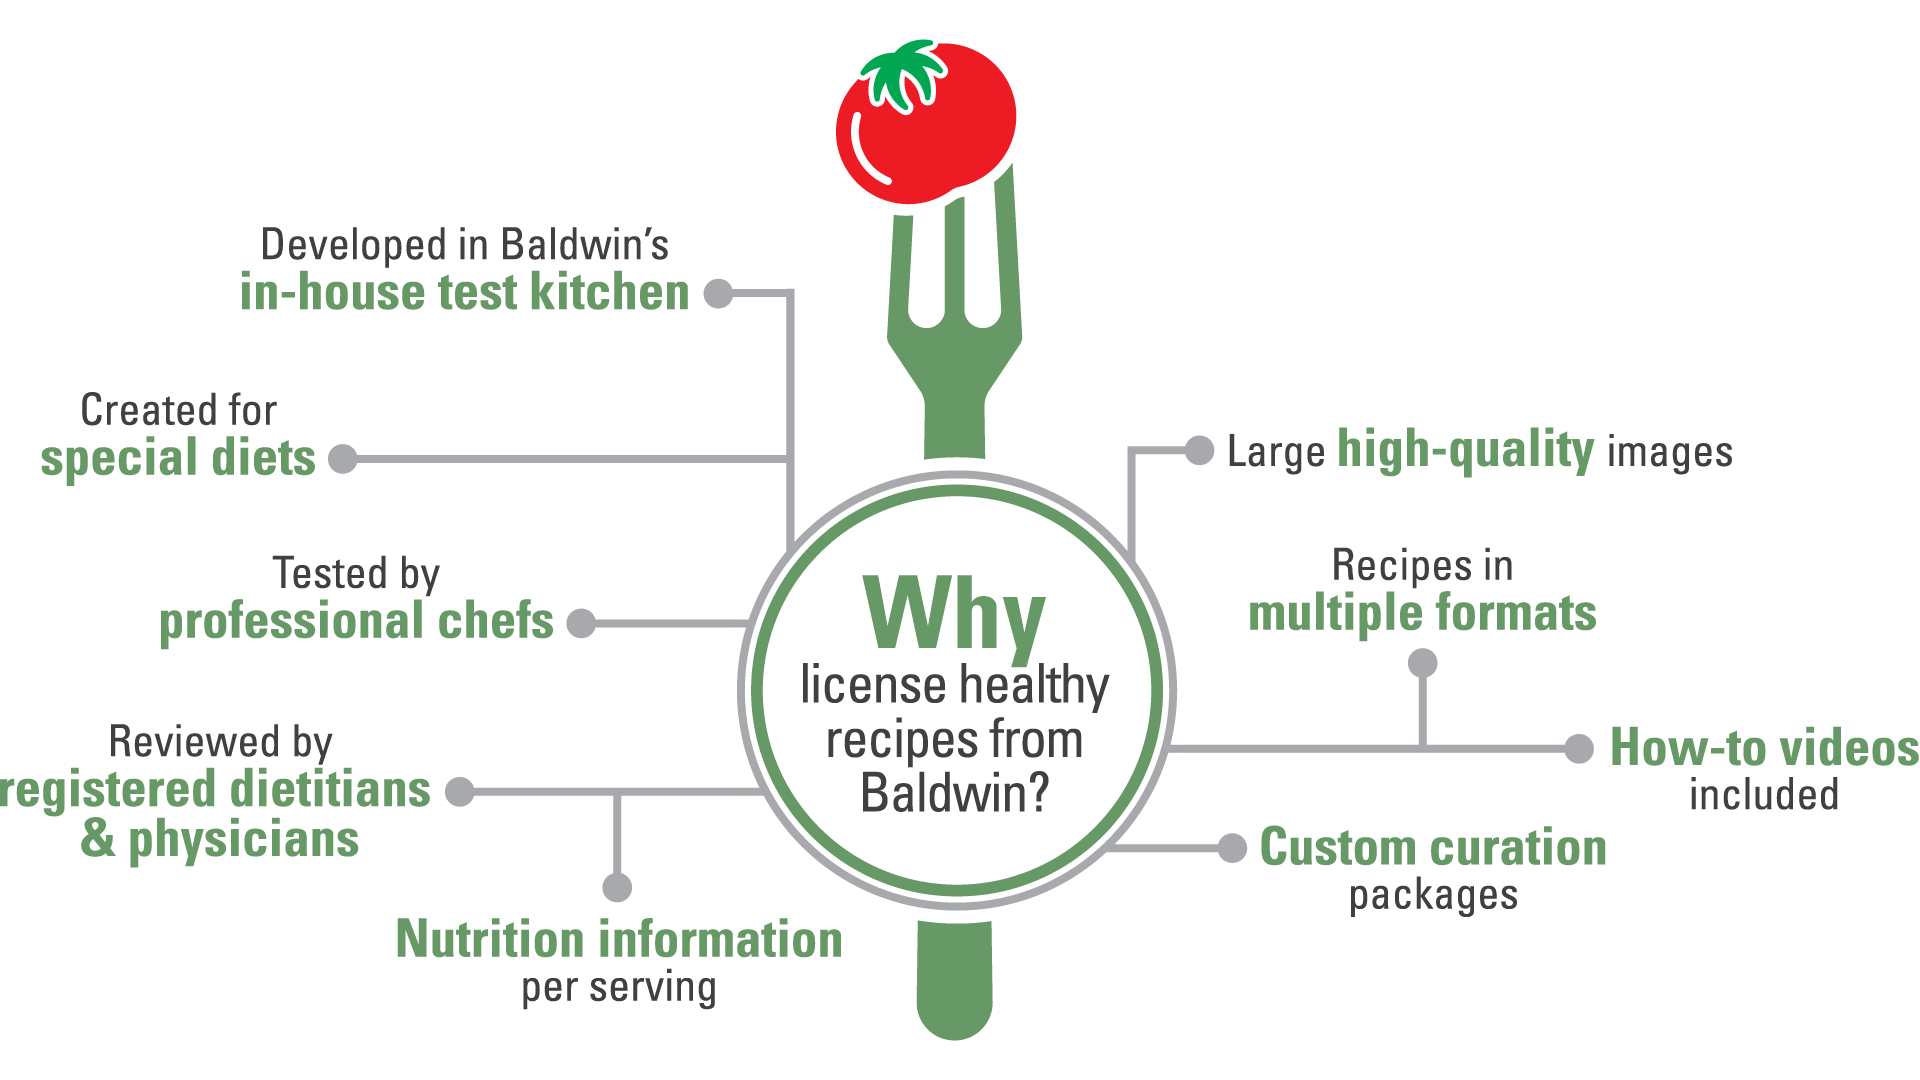 Why license healthy recipes from Baldwin?